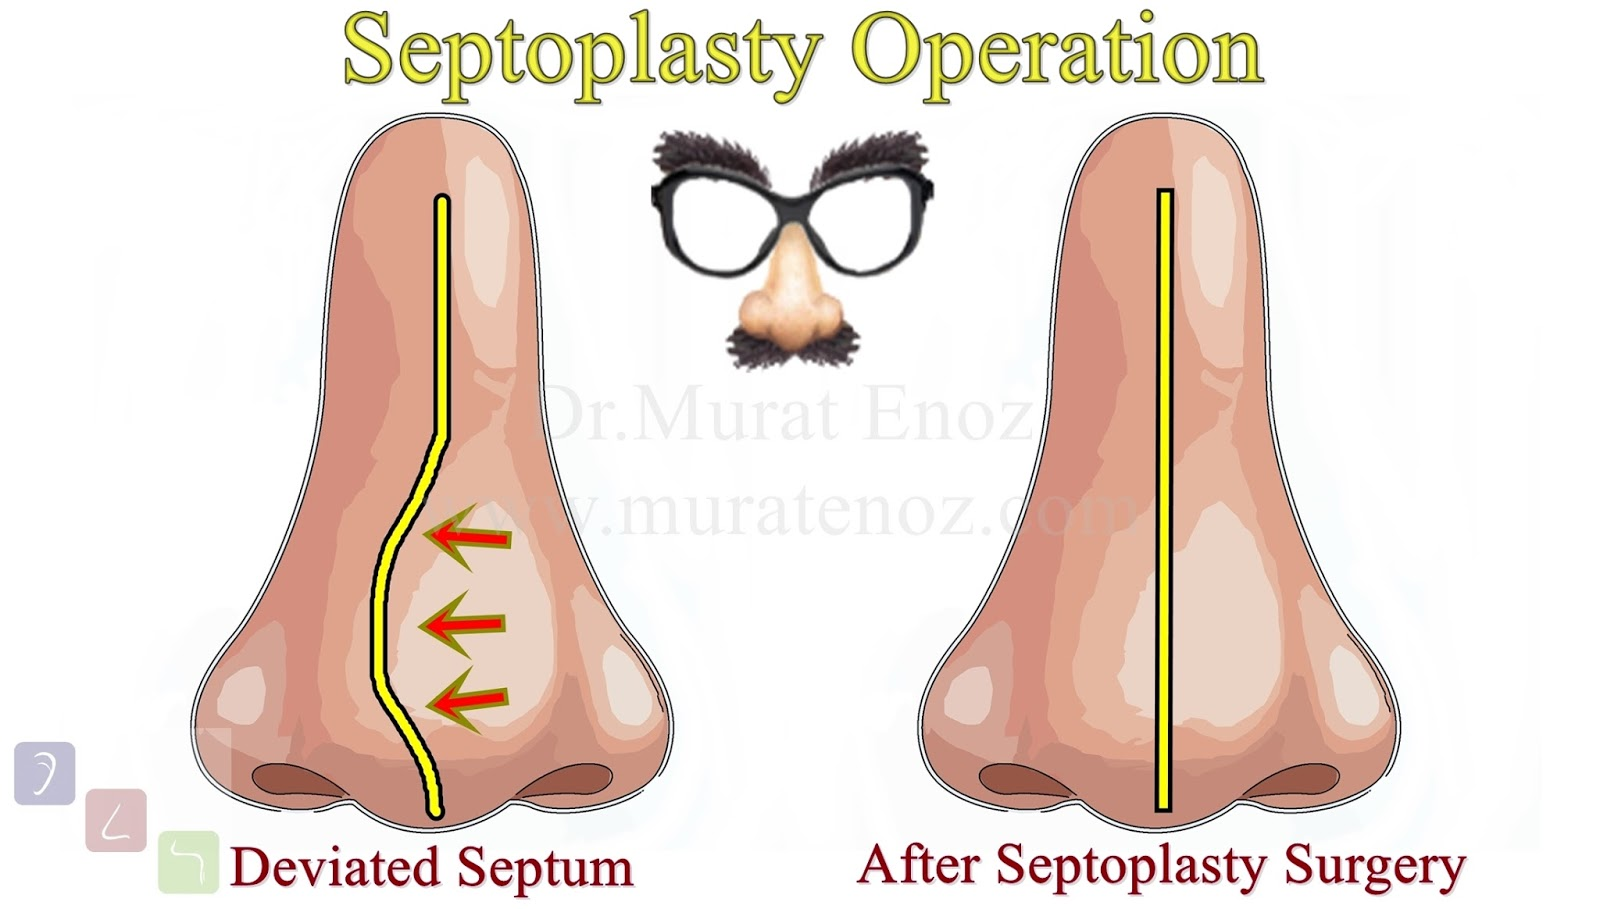 Septoplasty Operation